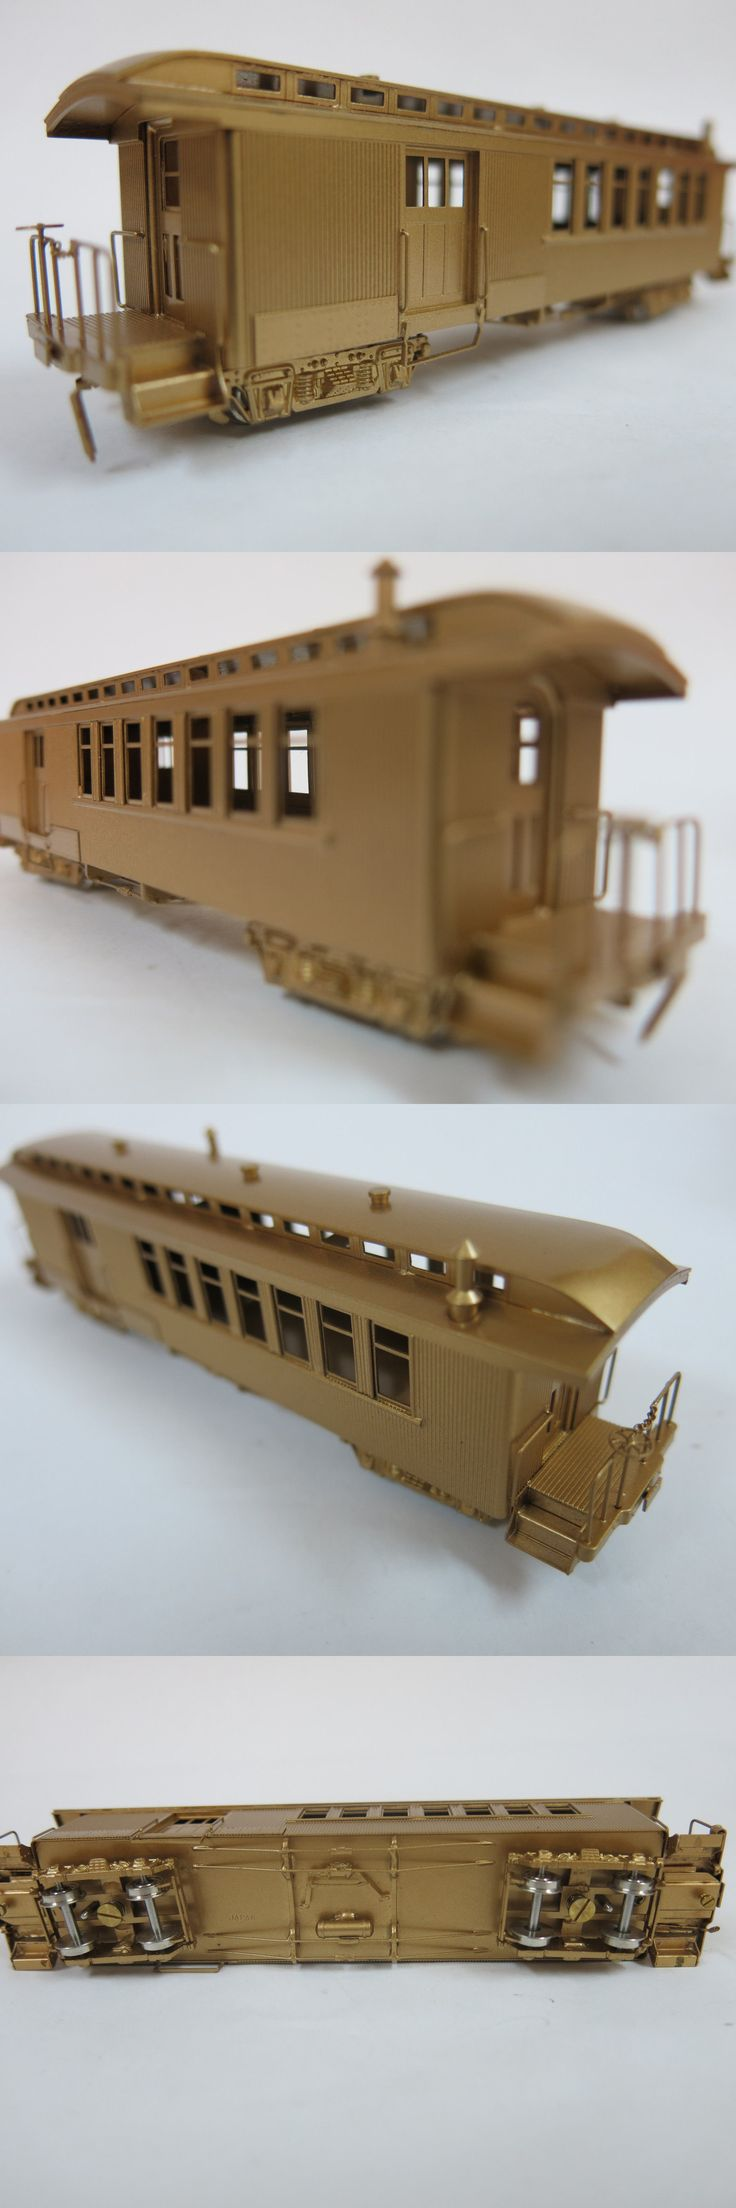 Other HO Scale Parts and Accs 11644: S Soho And Co. 0907. Brass. Dandrgw 202 Combine With Trucks And Decals . Hon3 -> BUY IT NOW ONLY: $149.85 on eBay!